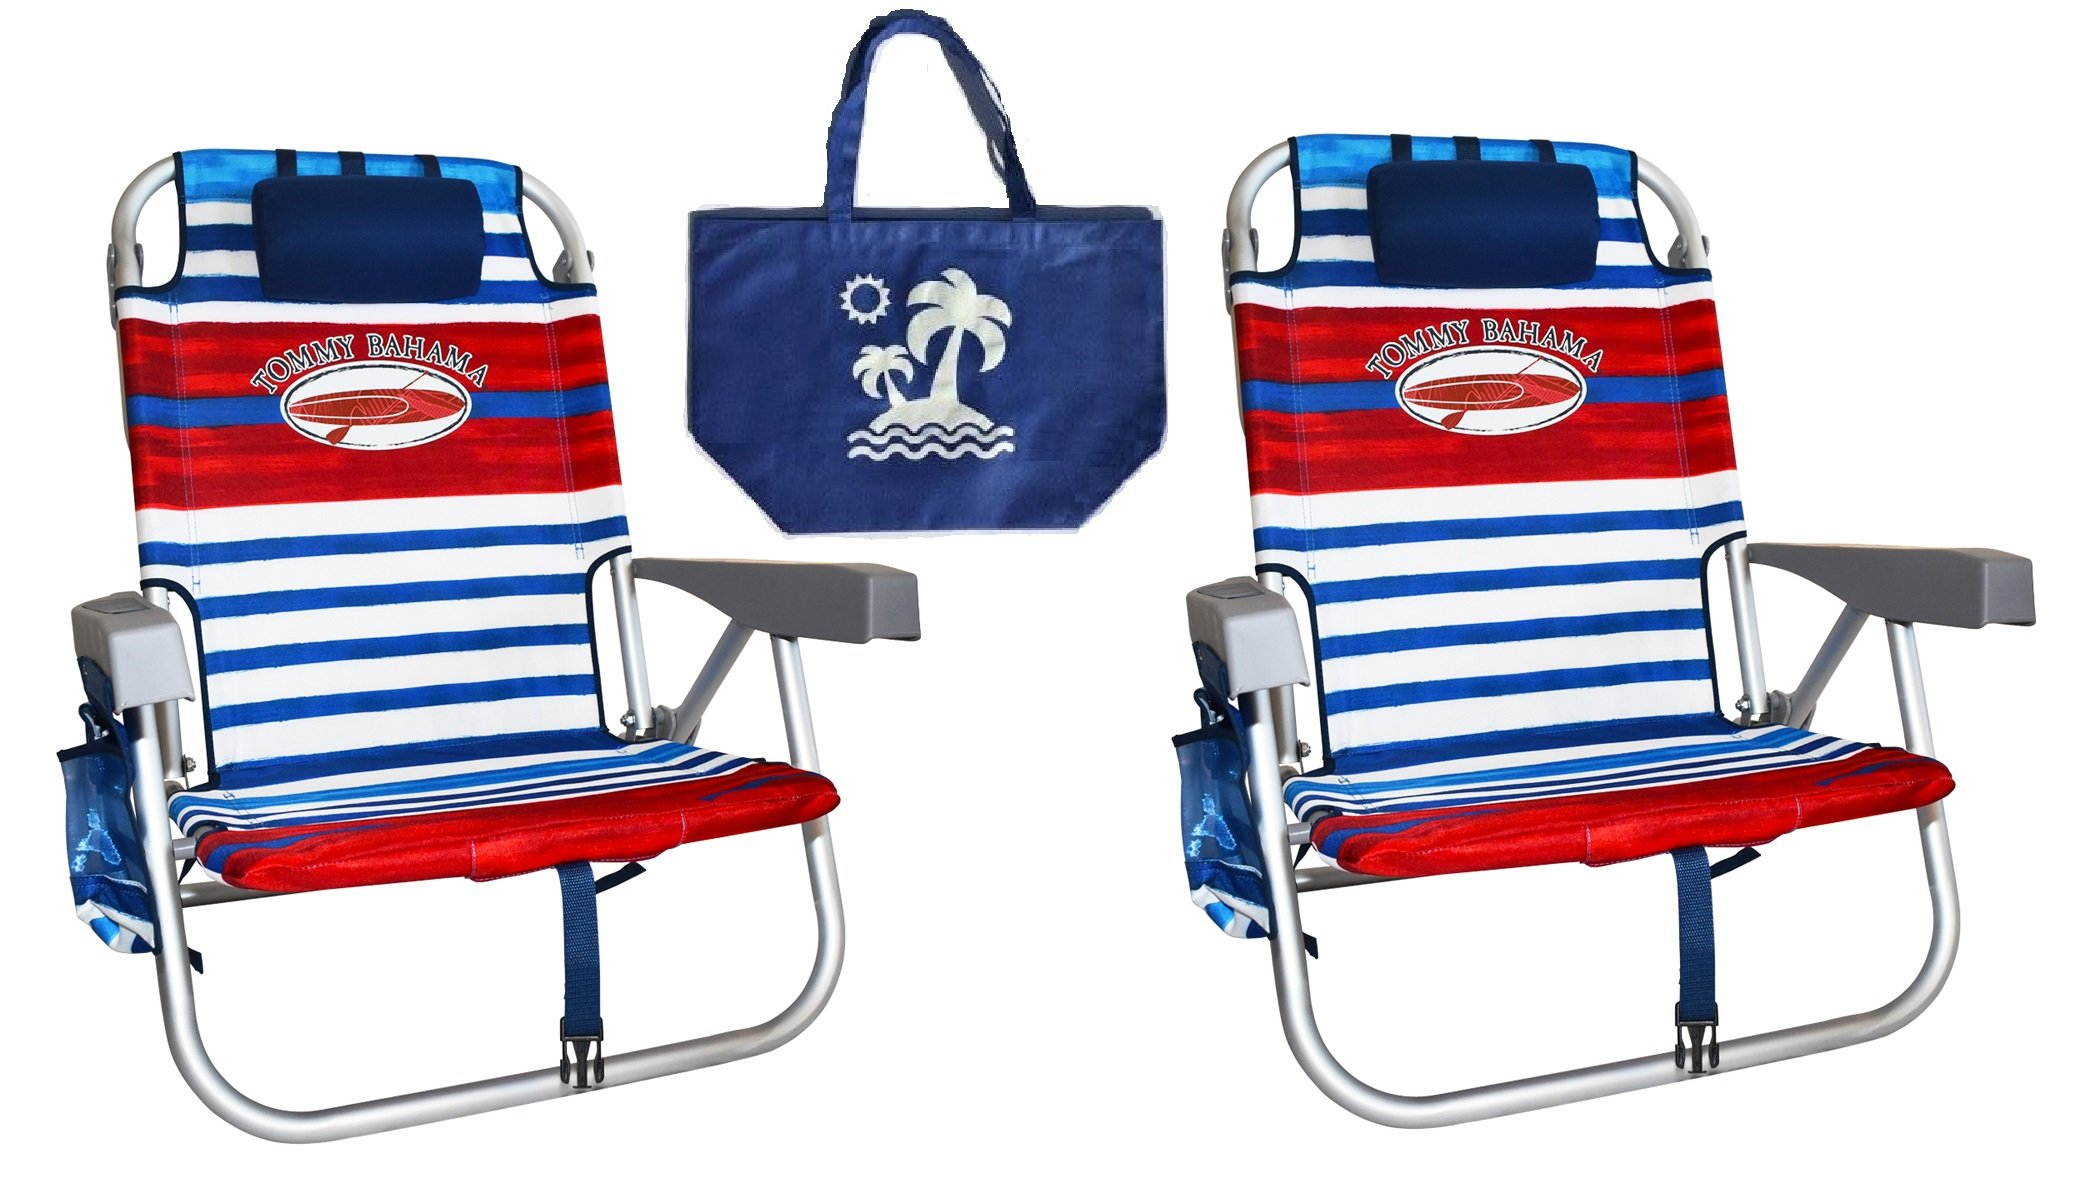 2 Tommy Bahama Backpack Beach Chairs/ Red White Blue Stripes + 1 Medium Tote Bag